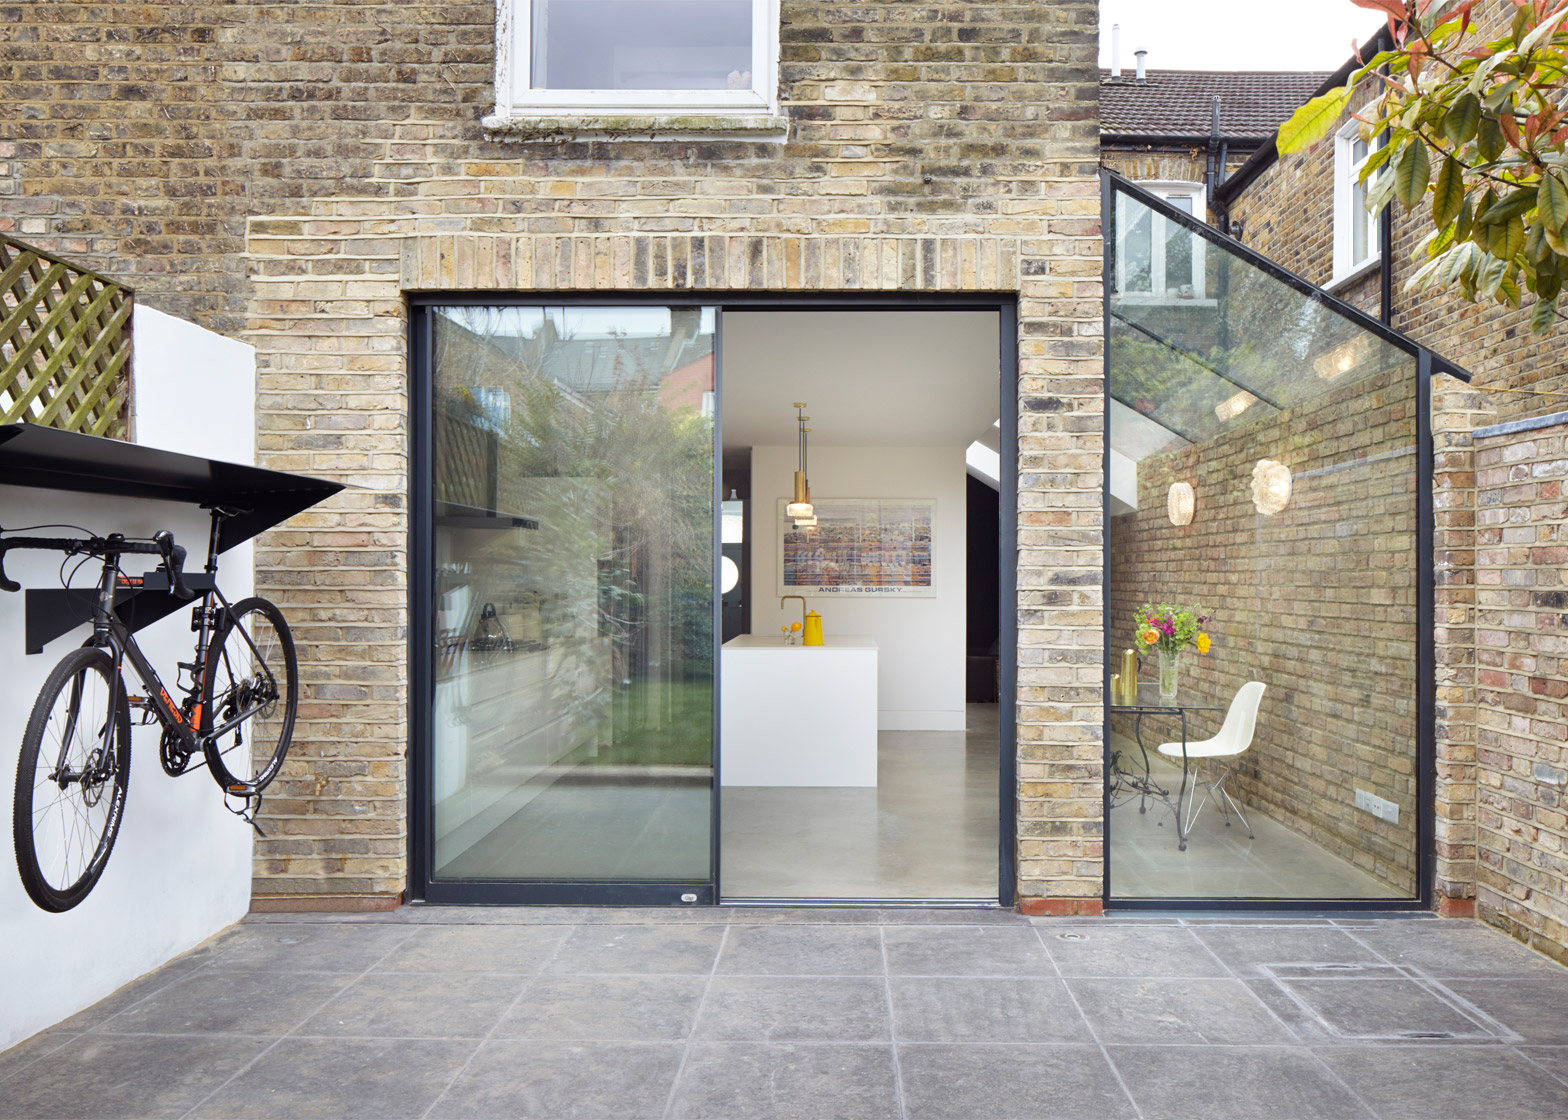 rise design studio adds glass extension to london house